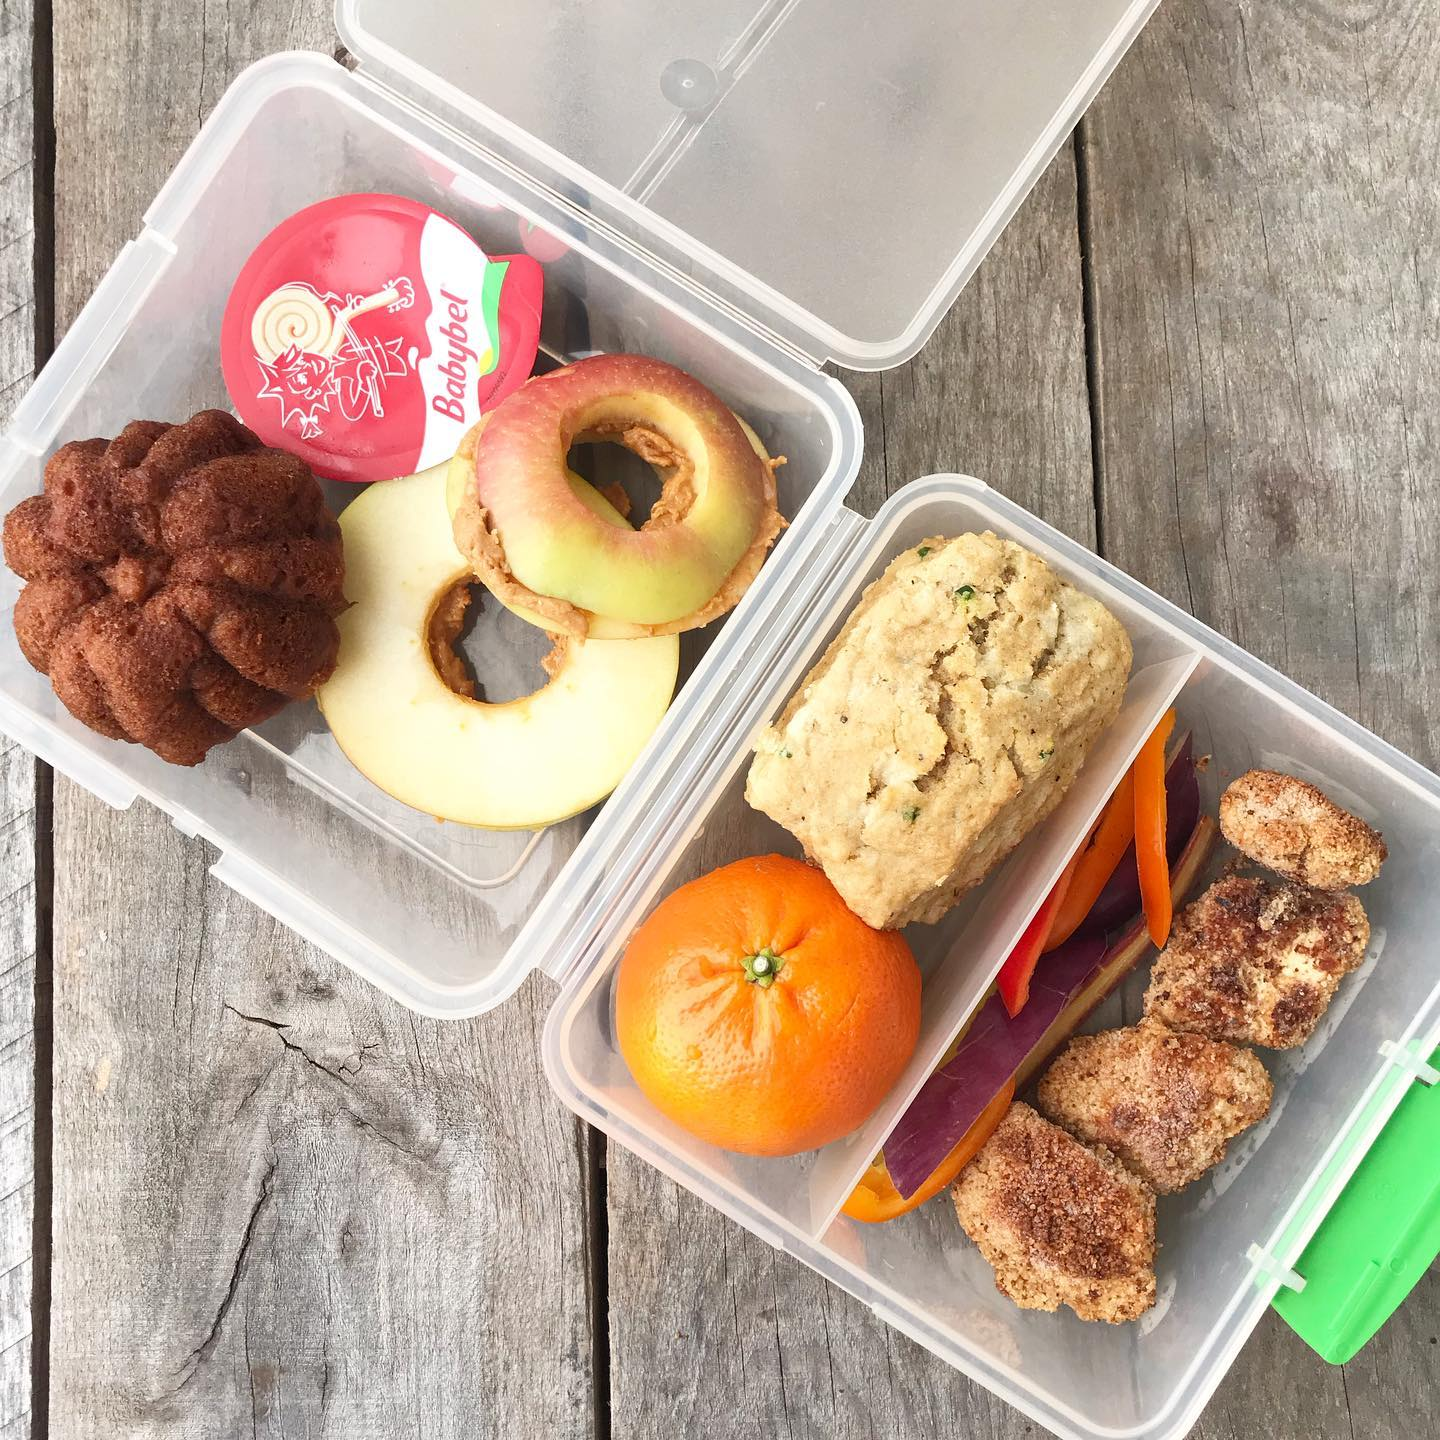 school lunch with apple sandwich, pumpkin muffin, and other snacks from 100 days of real food